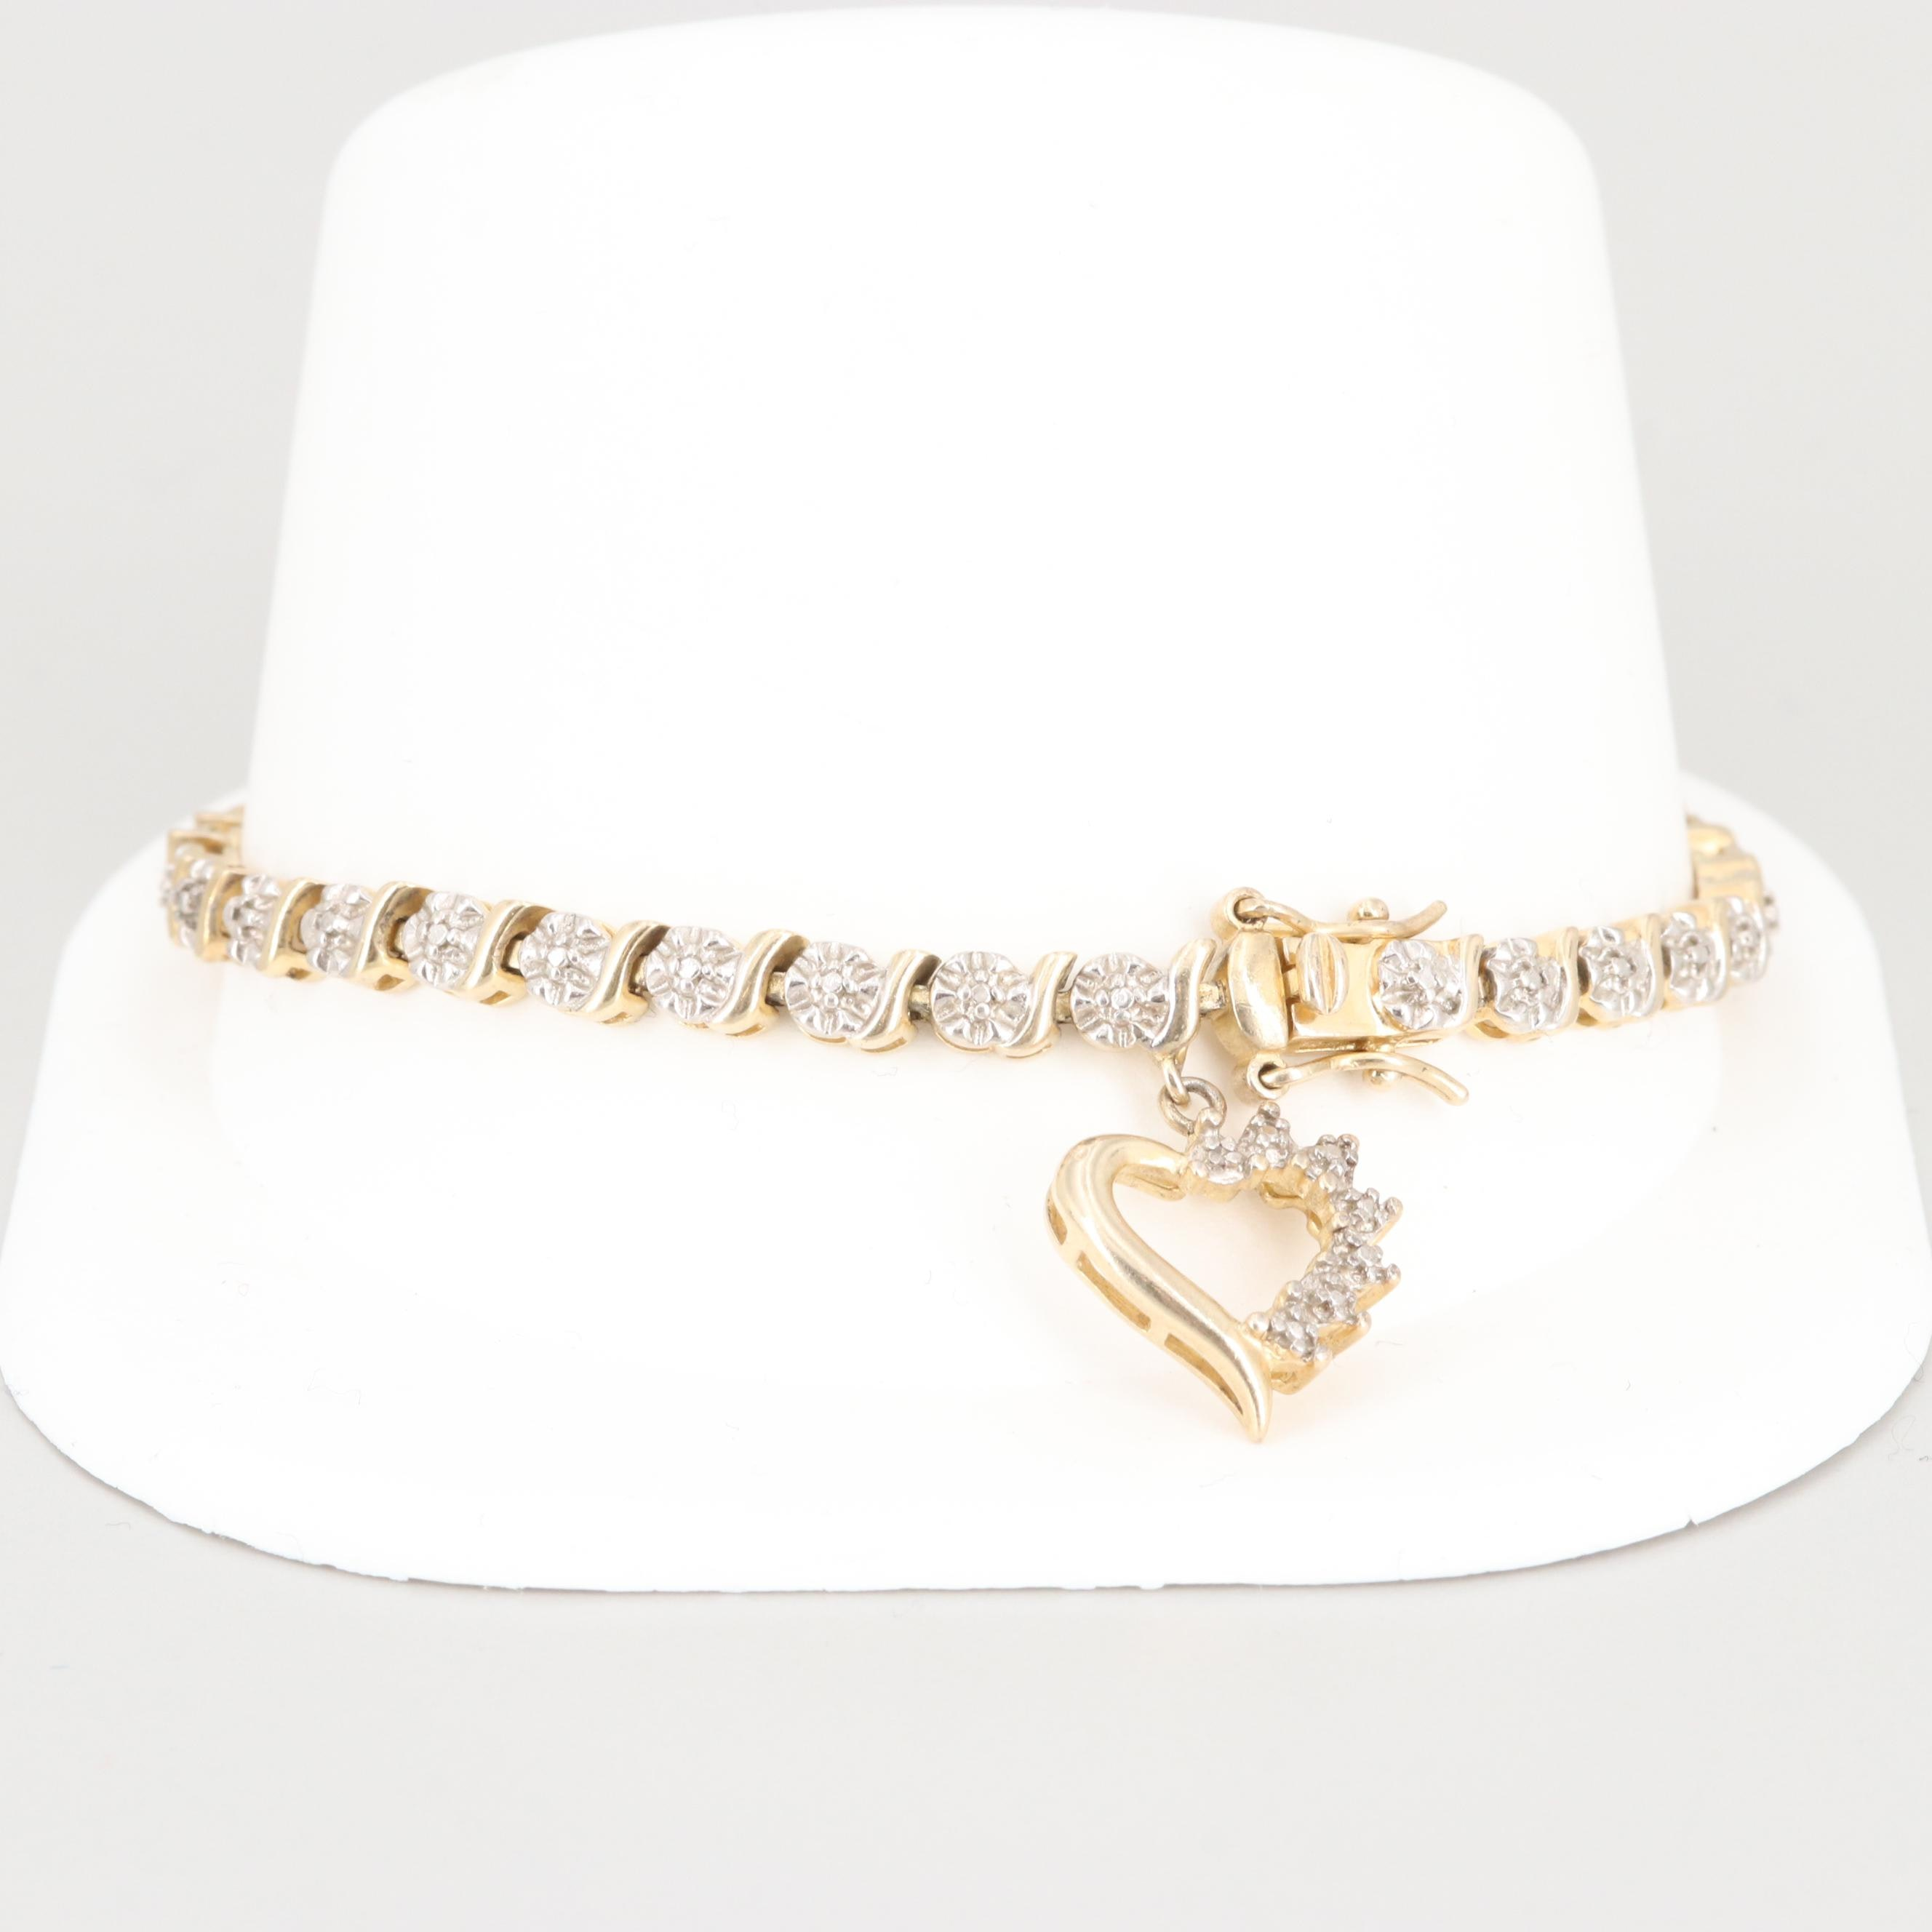 Gold Wash on Sterling Silver Diamond Bracelet with Heart Charm